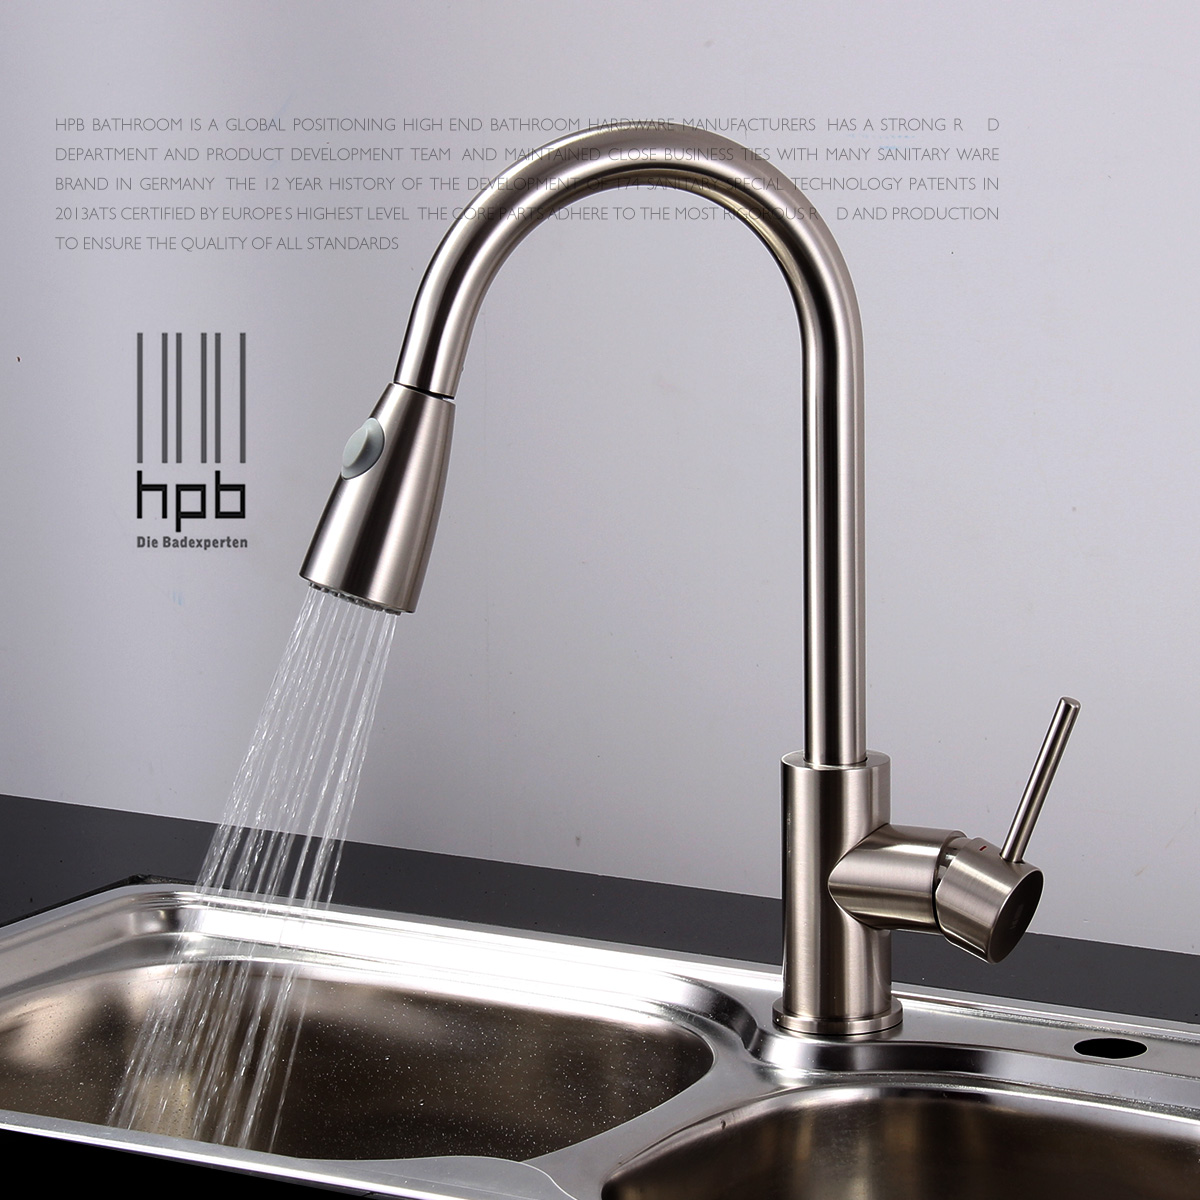 Kitchen Faucet No Water: Brass Sink Mixer Hot And Cold Water Tap Pull Type